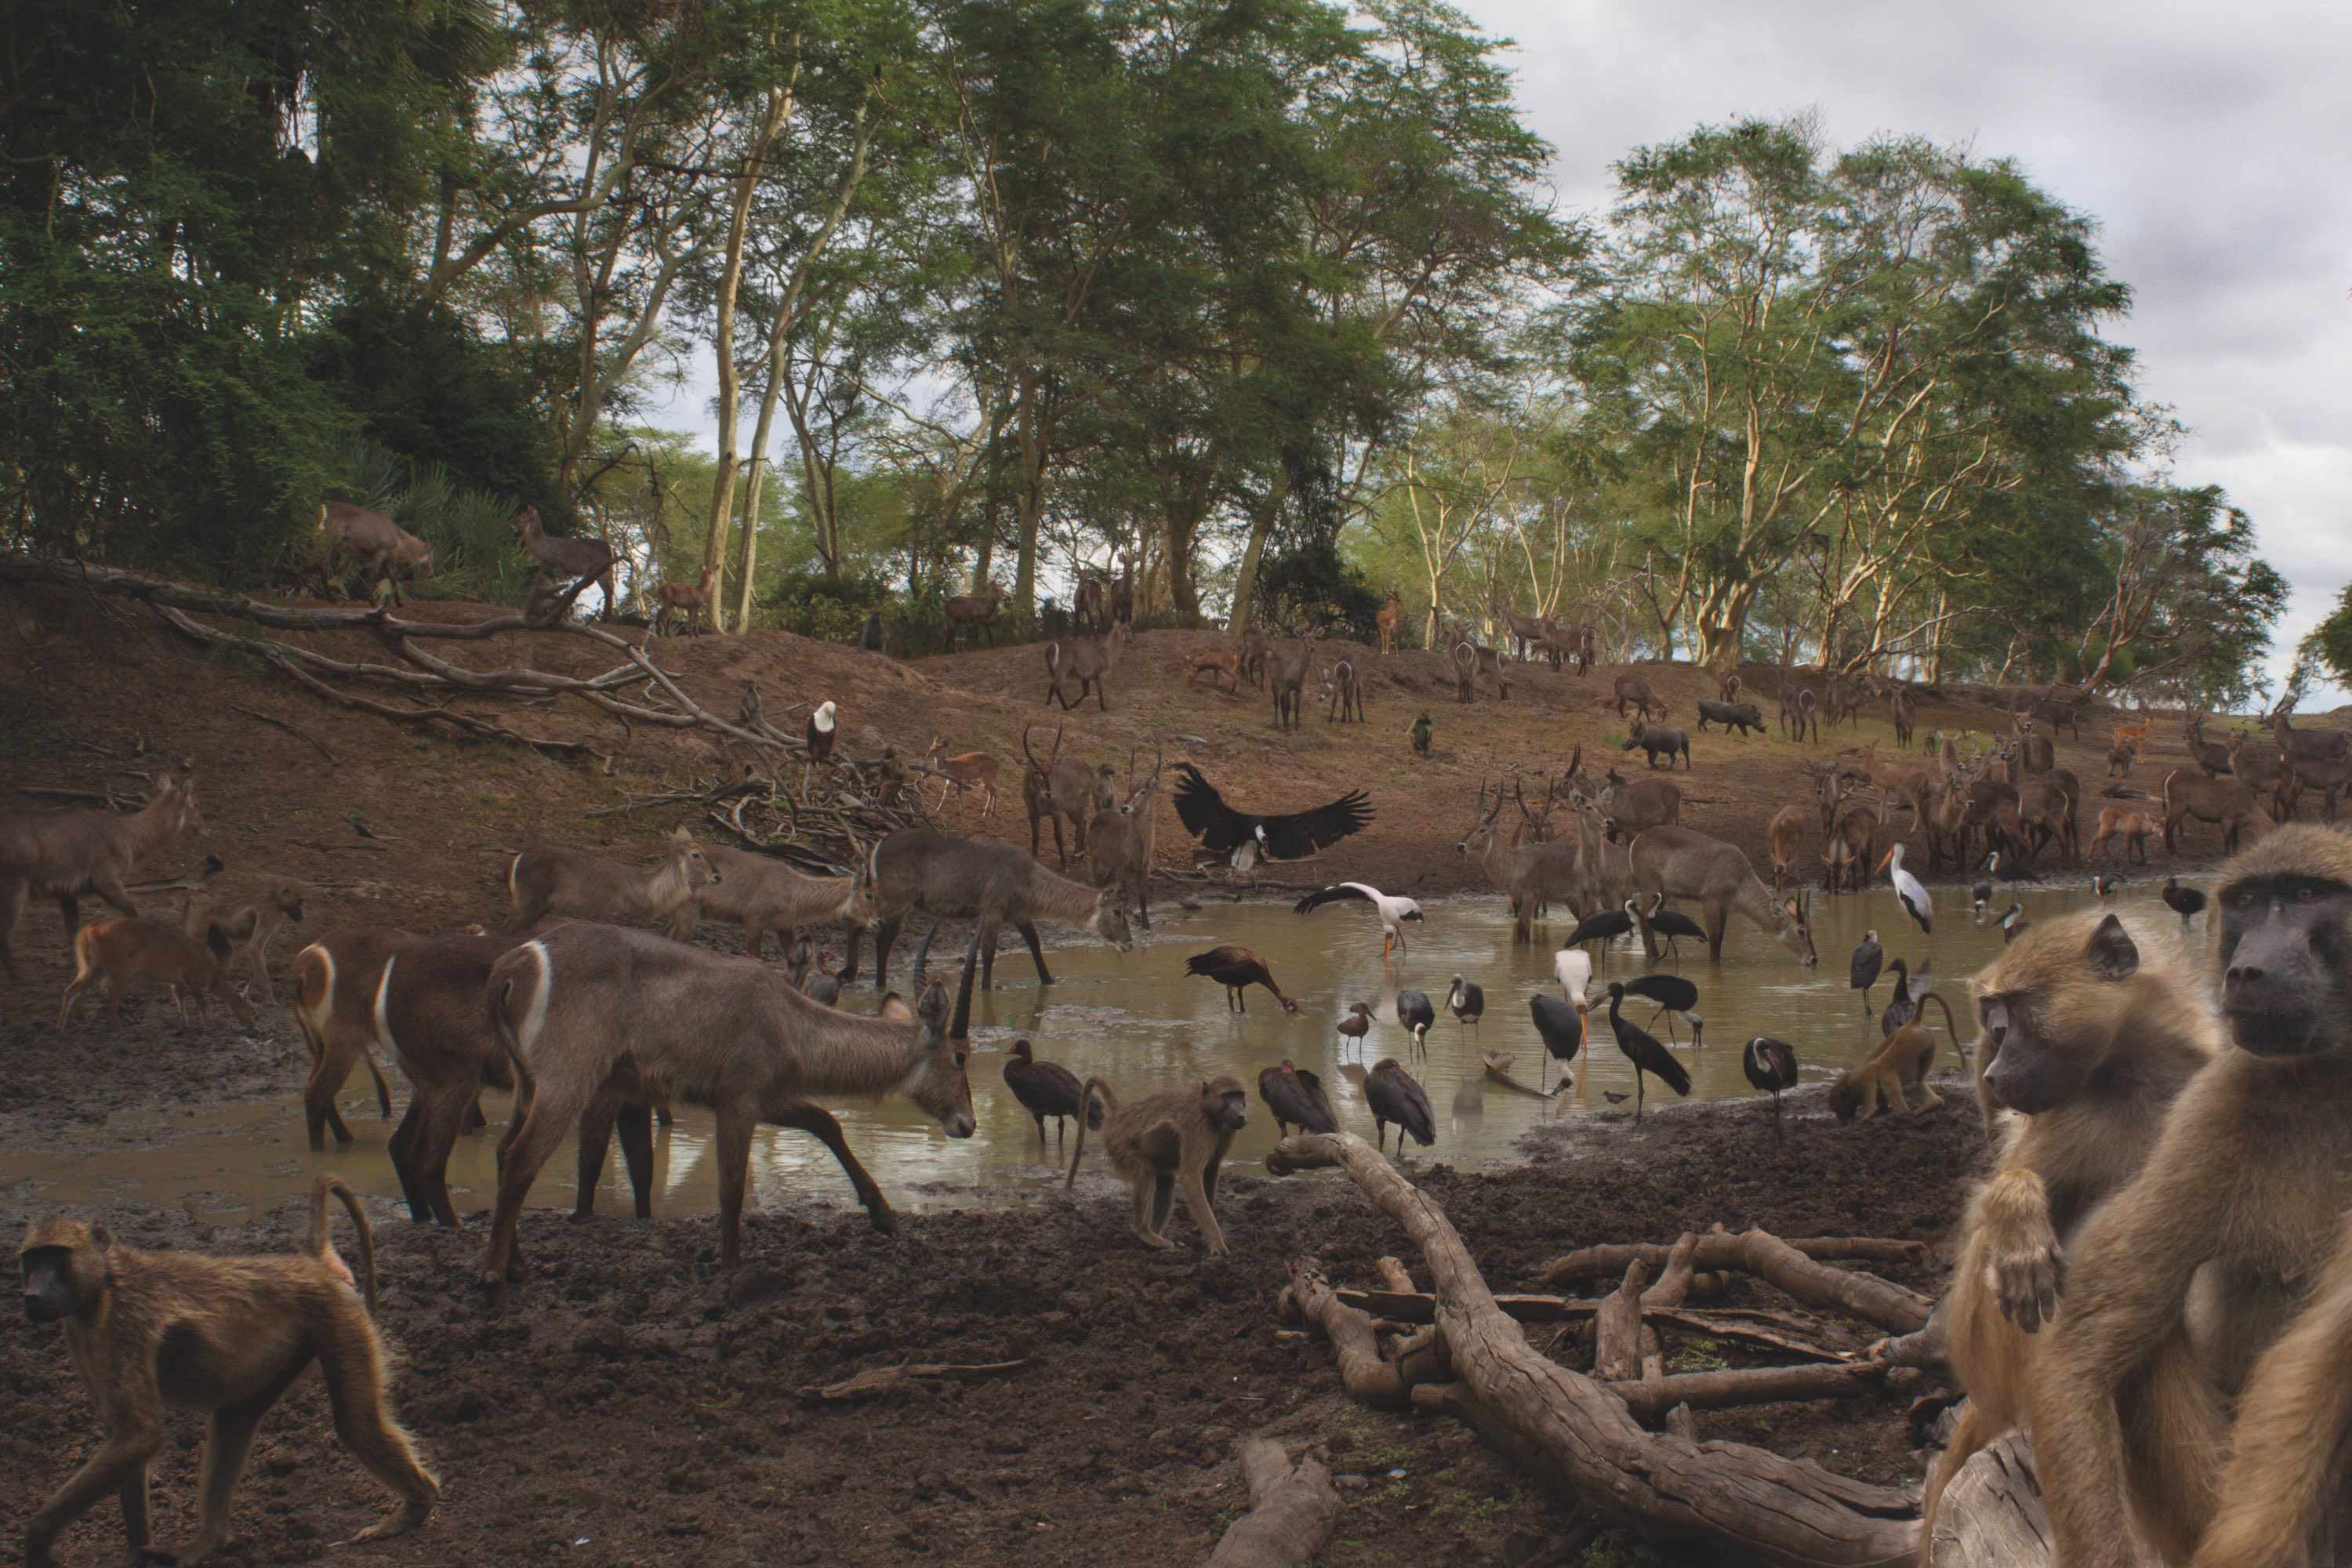 This composite image, taken during a drought, shows the variety of mammals and birds visiting a scarce watering hole in Gorongosa National Park over the course of one day. © Piotr Naskrecki and Jen Guyton